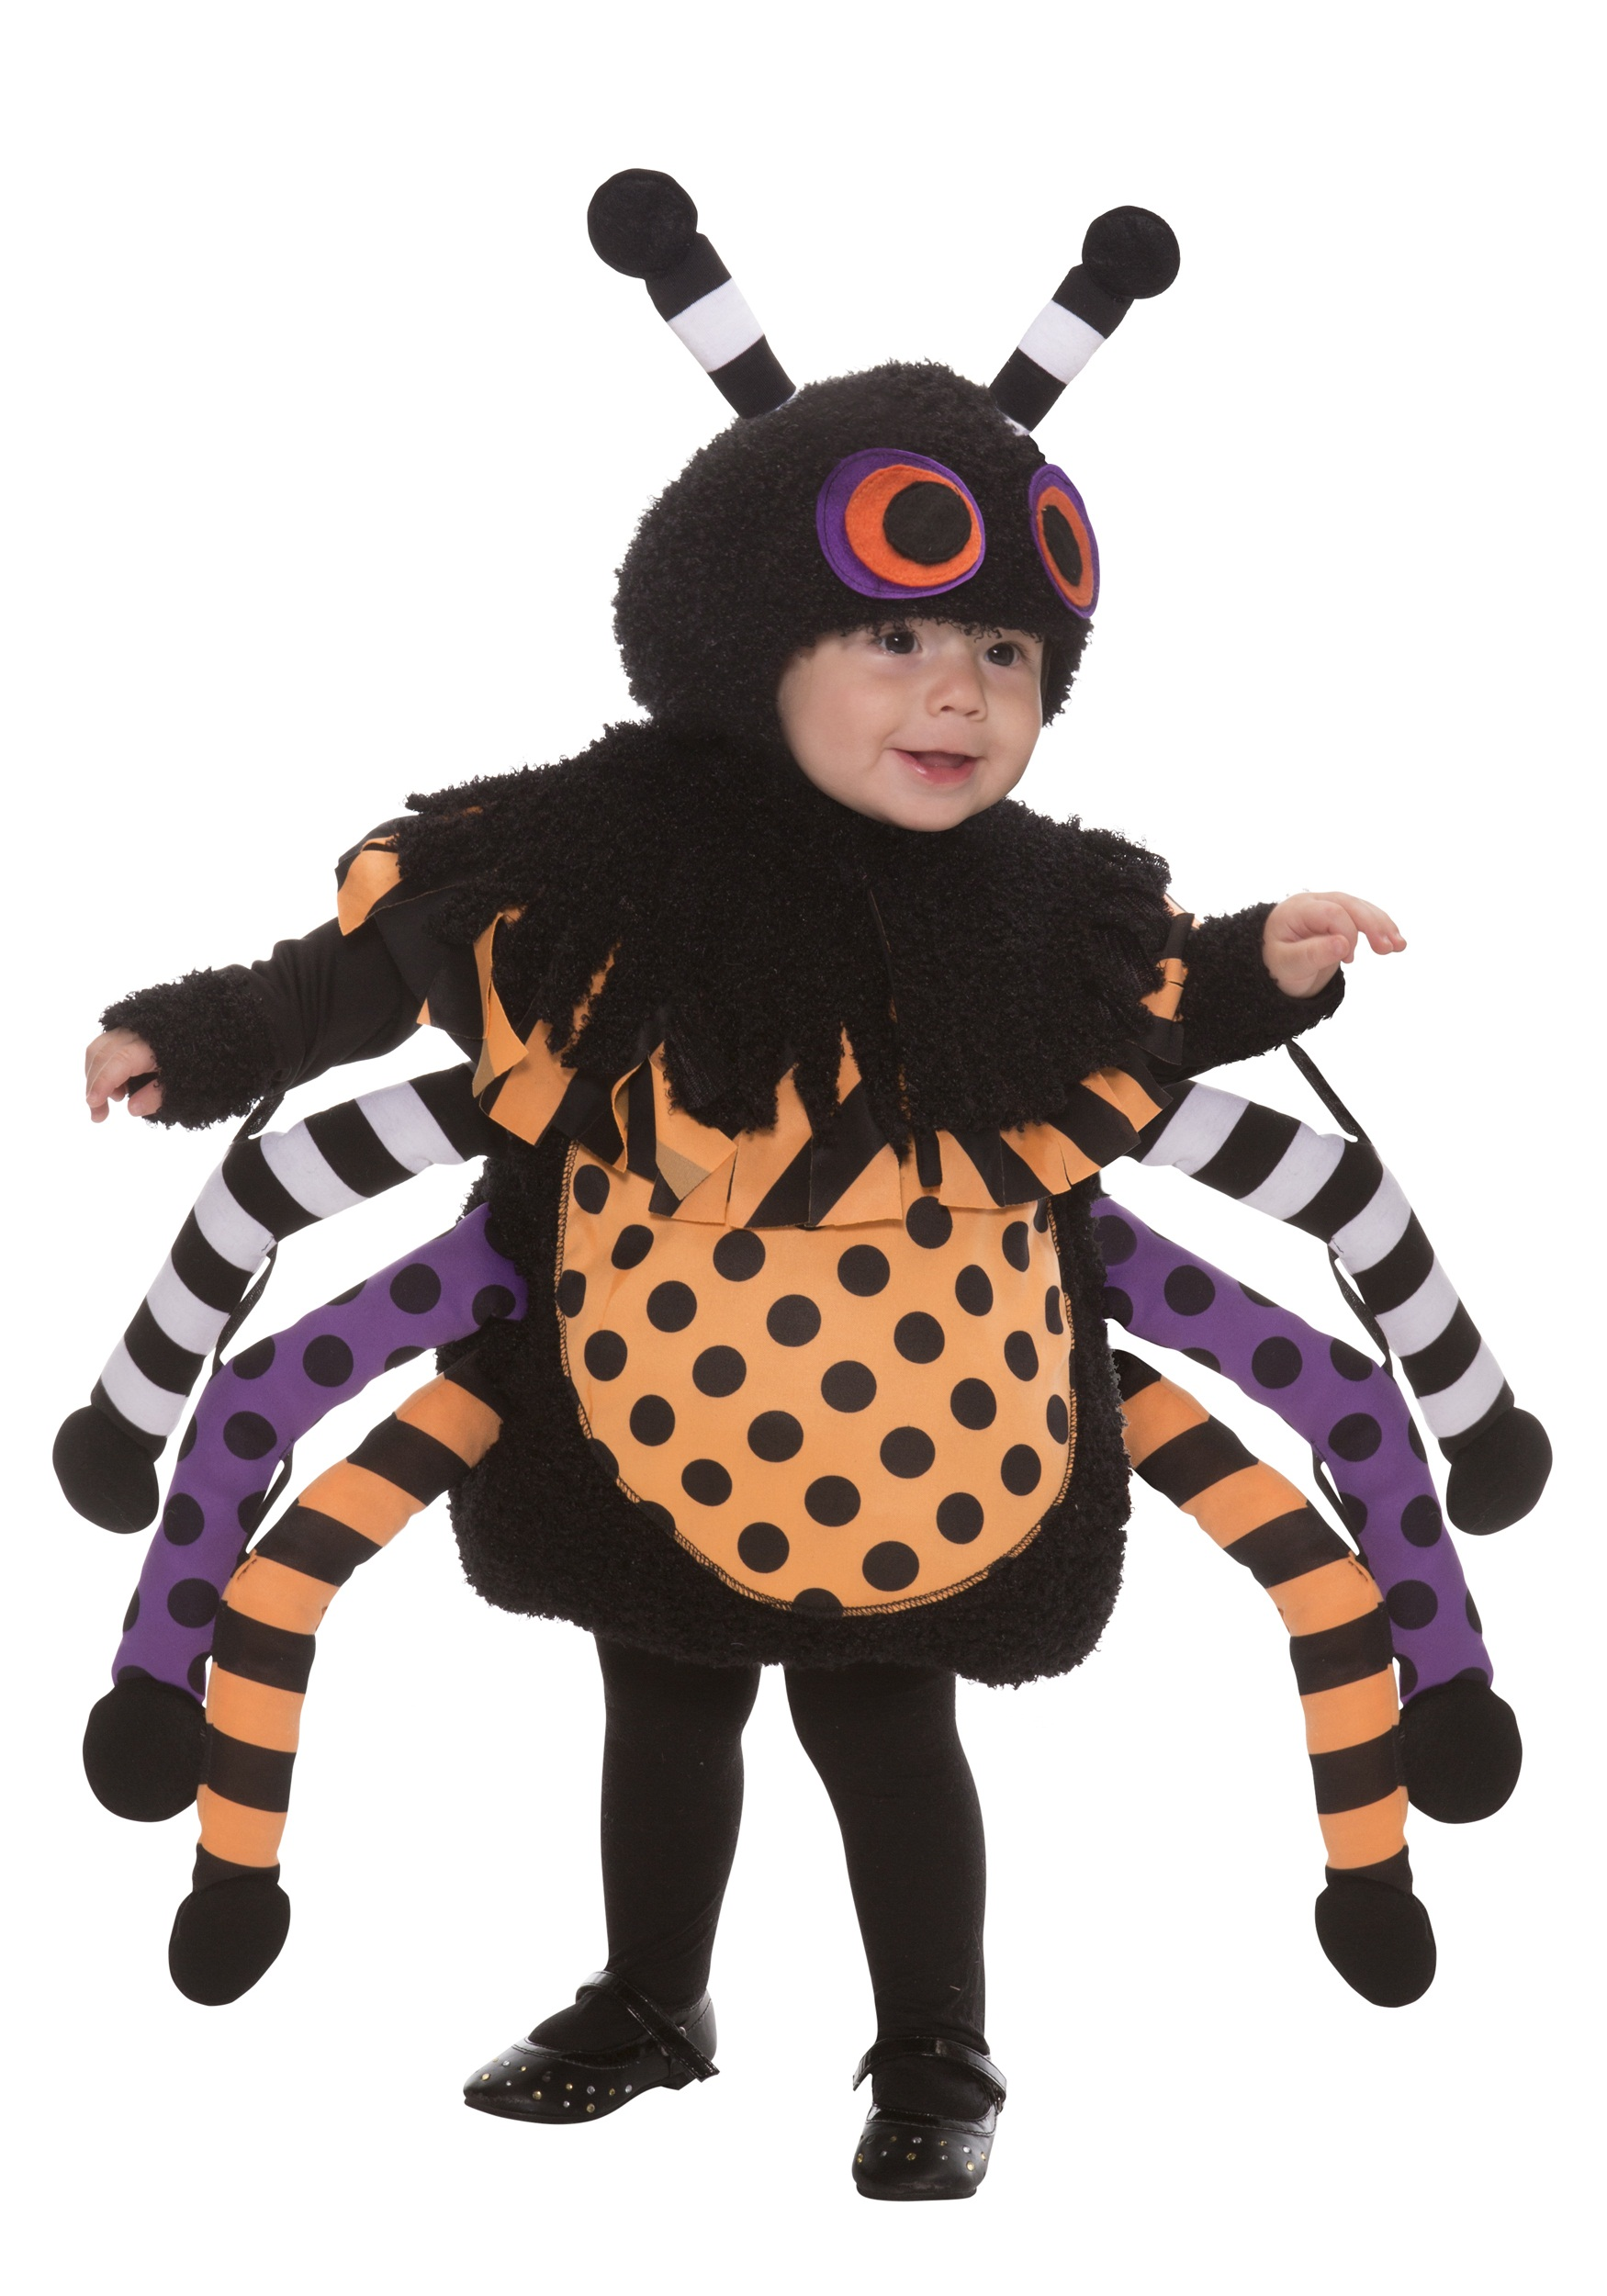 Toddler Polka Dot Spider Costume  sc 1 st  Halloween Costumes & Toddler Polka Dot Spider Costume - Halloween Costume Ideas 2016